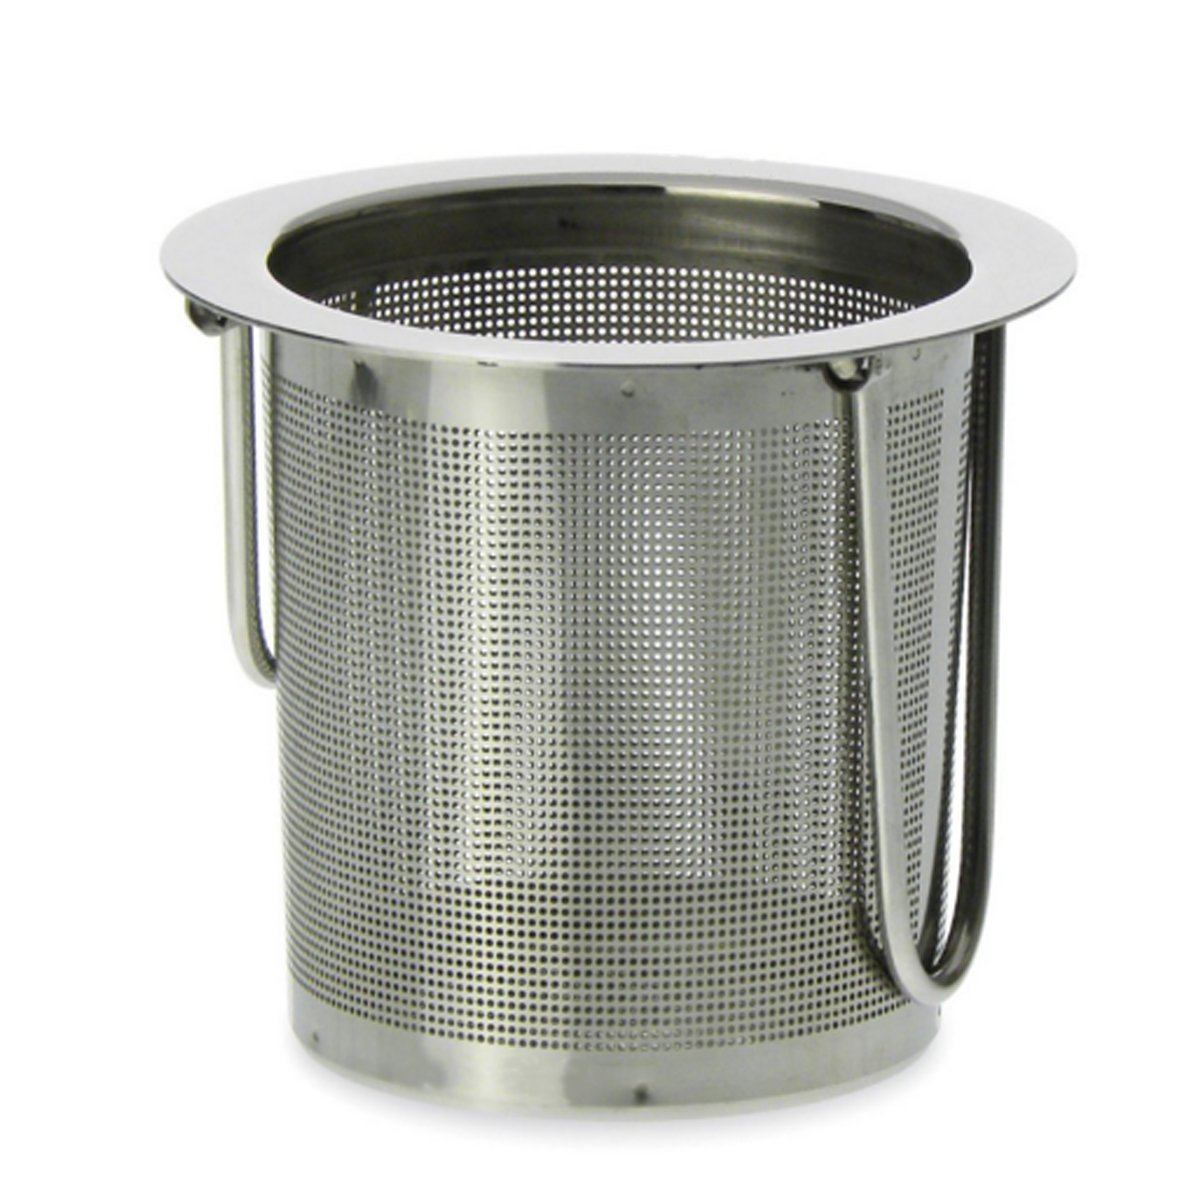 Schefs Premium Tea Infuser - Stainless Steel - Tea Filter - Perfect Strainer for Loose Leaf Tea by Schefs (Image #2)